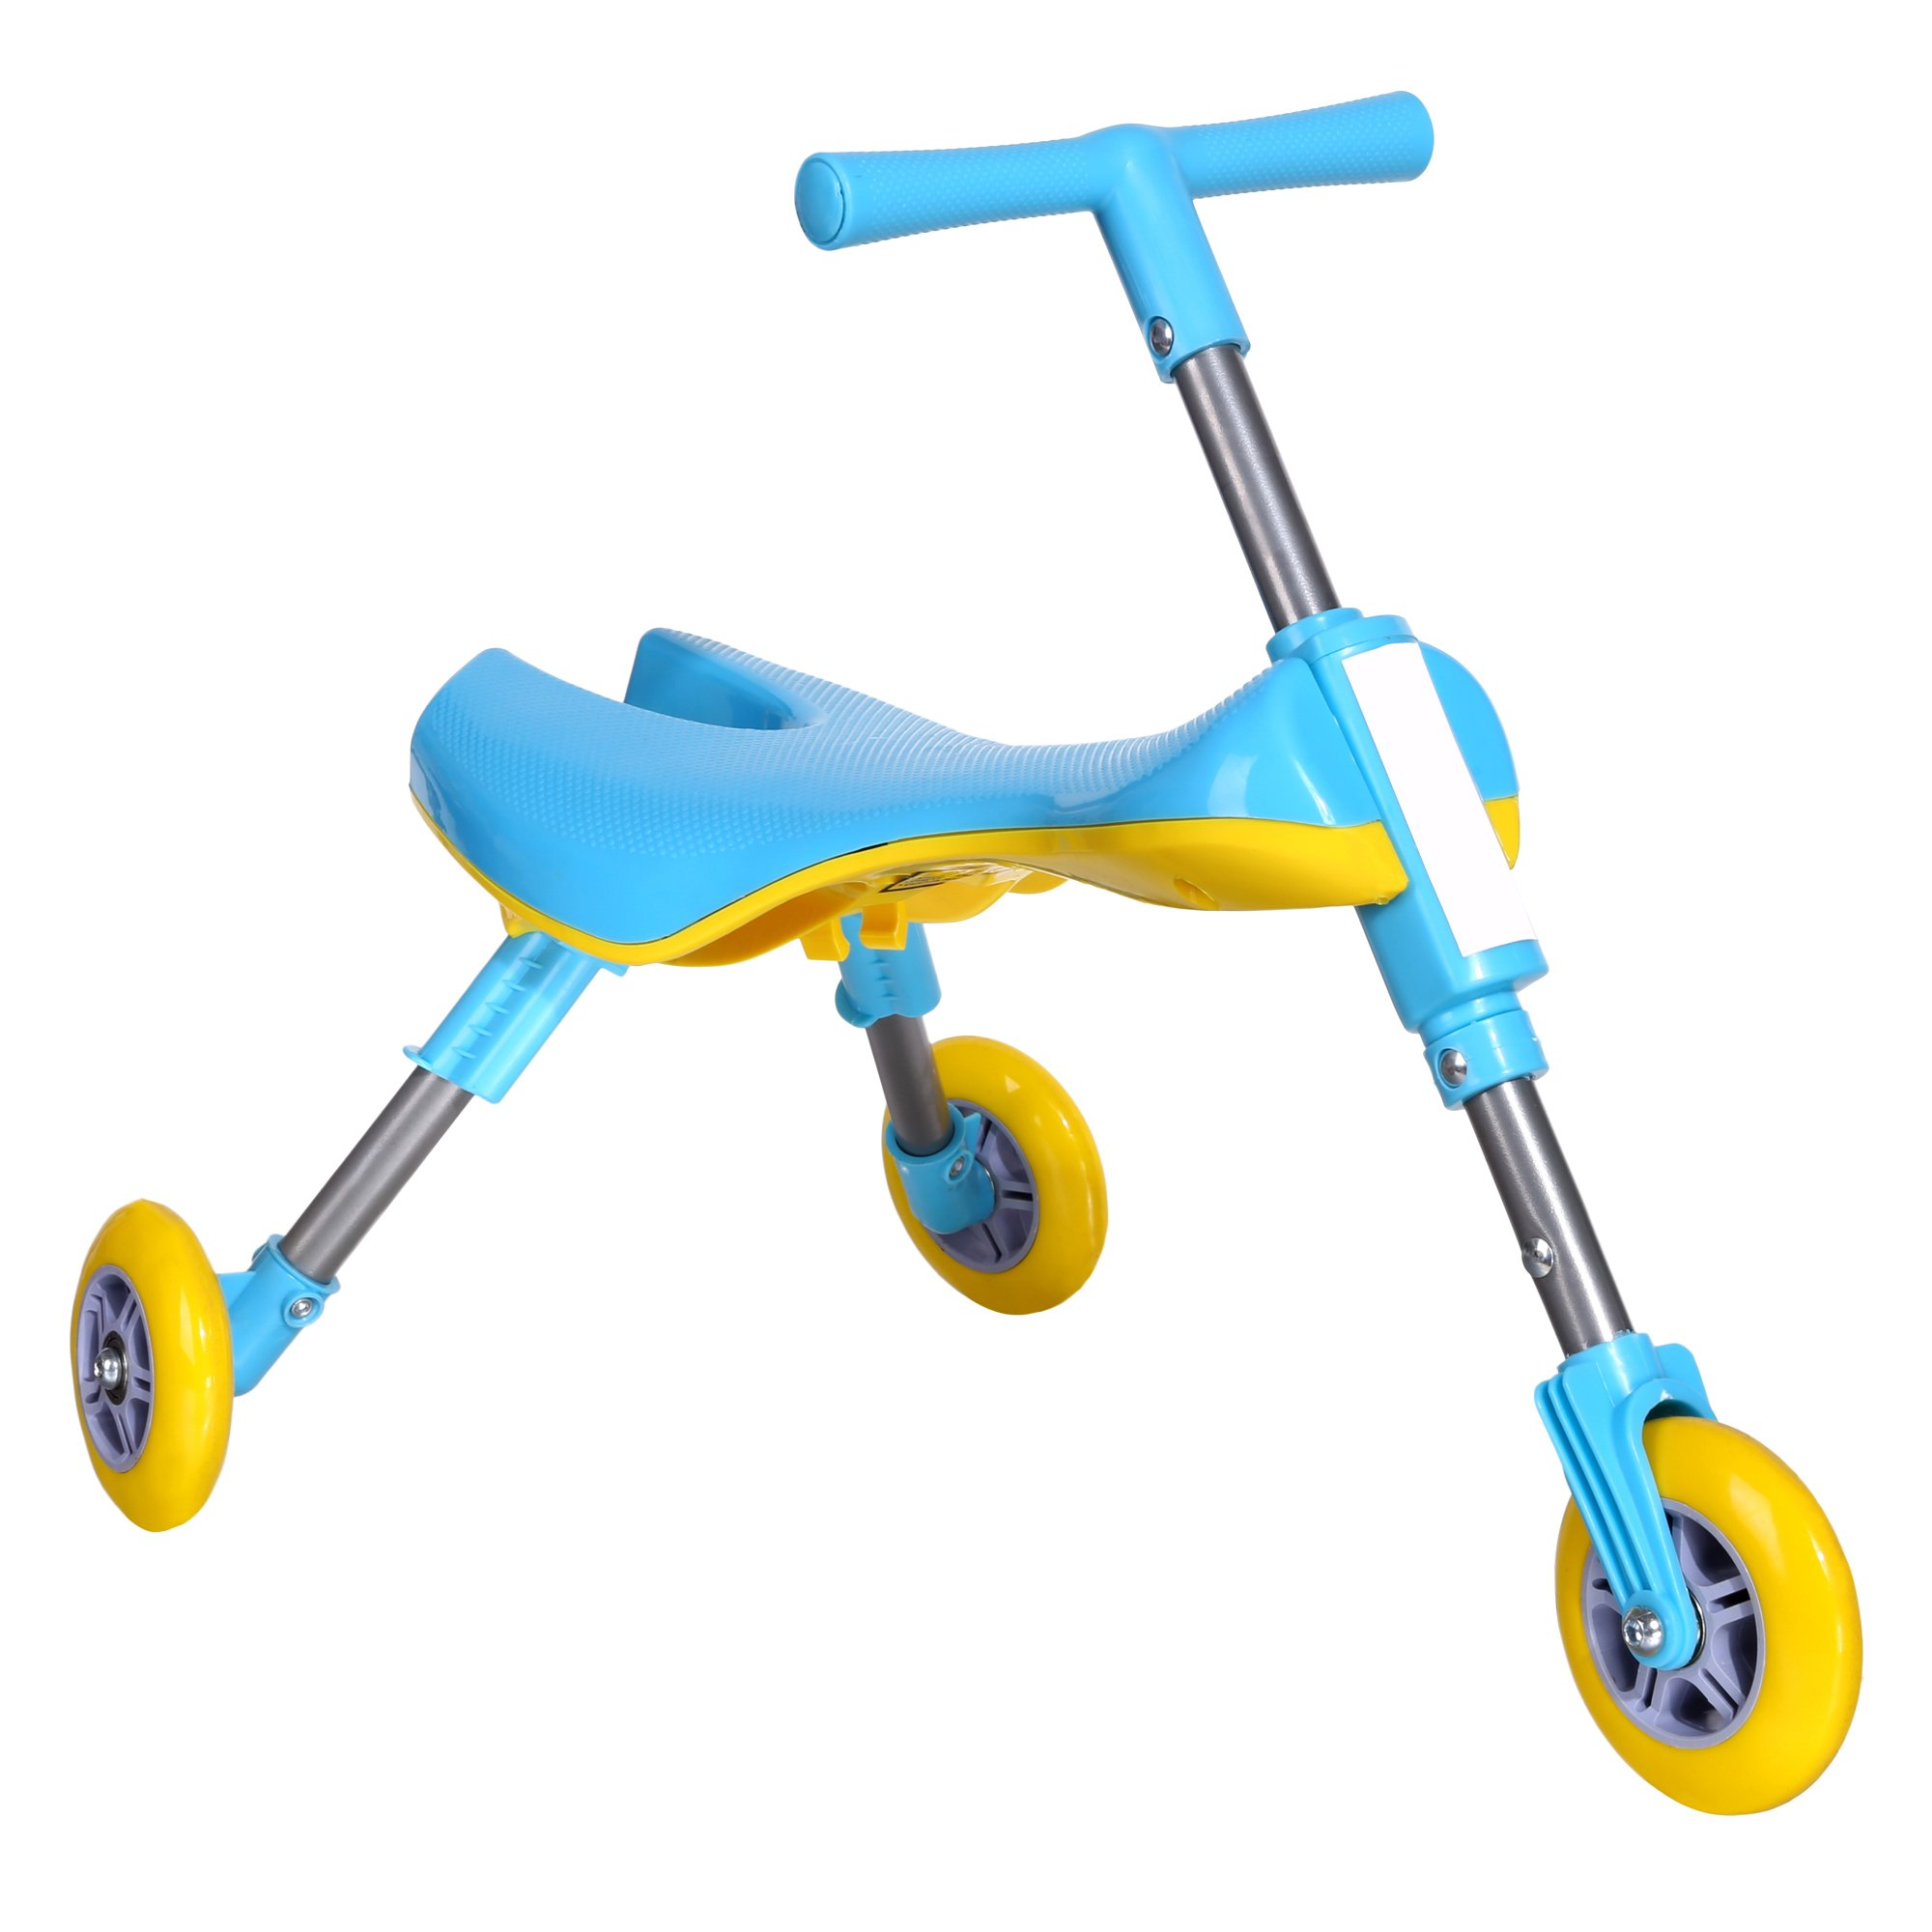 0d6ee764366 Get Quotations · Funmily Foldable Tricycle Indoor Outdoor Toddlers Glide  Tricycle for kids